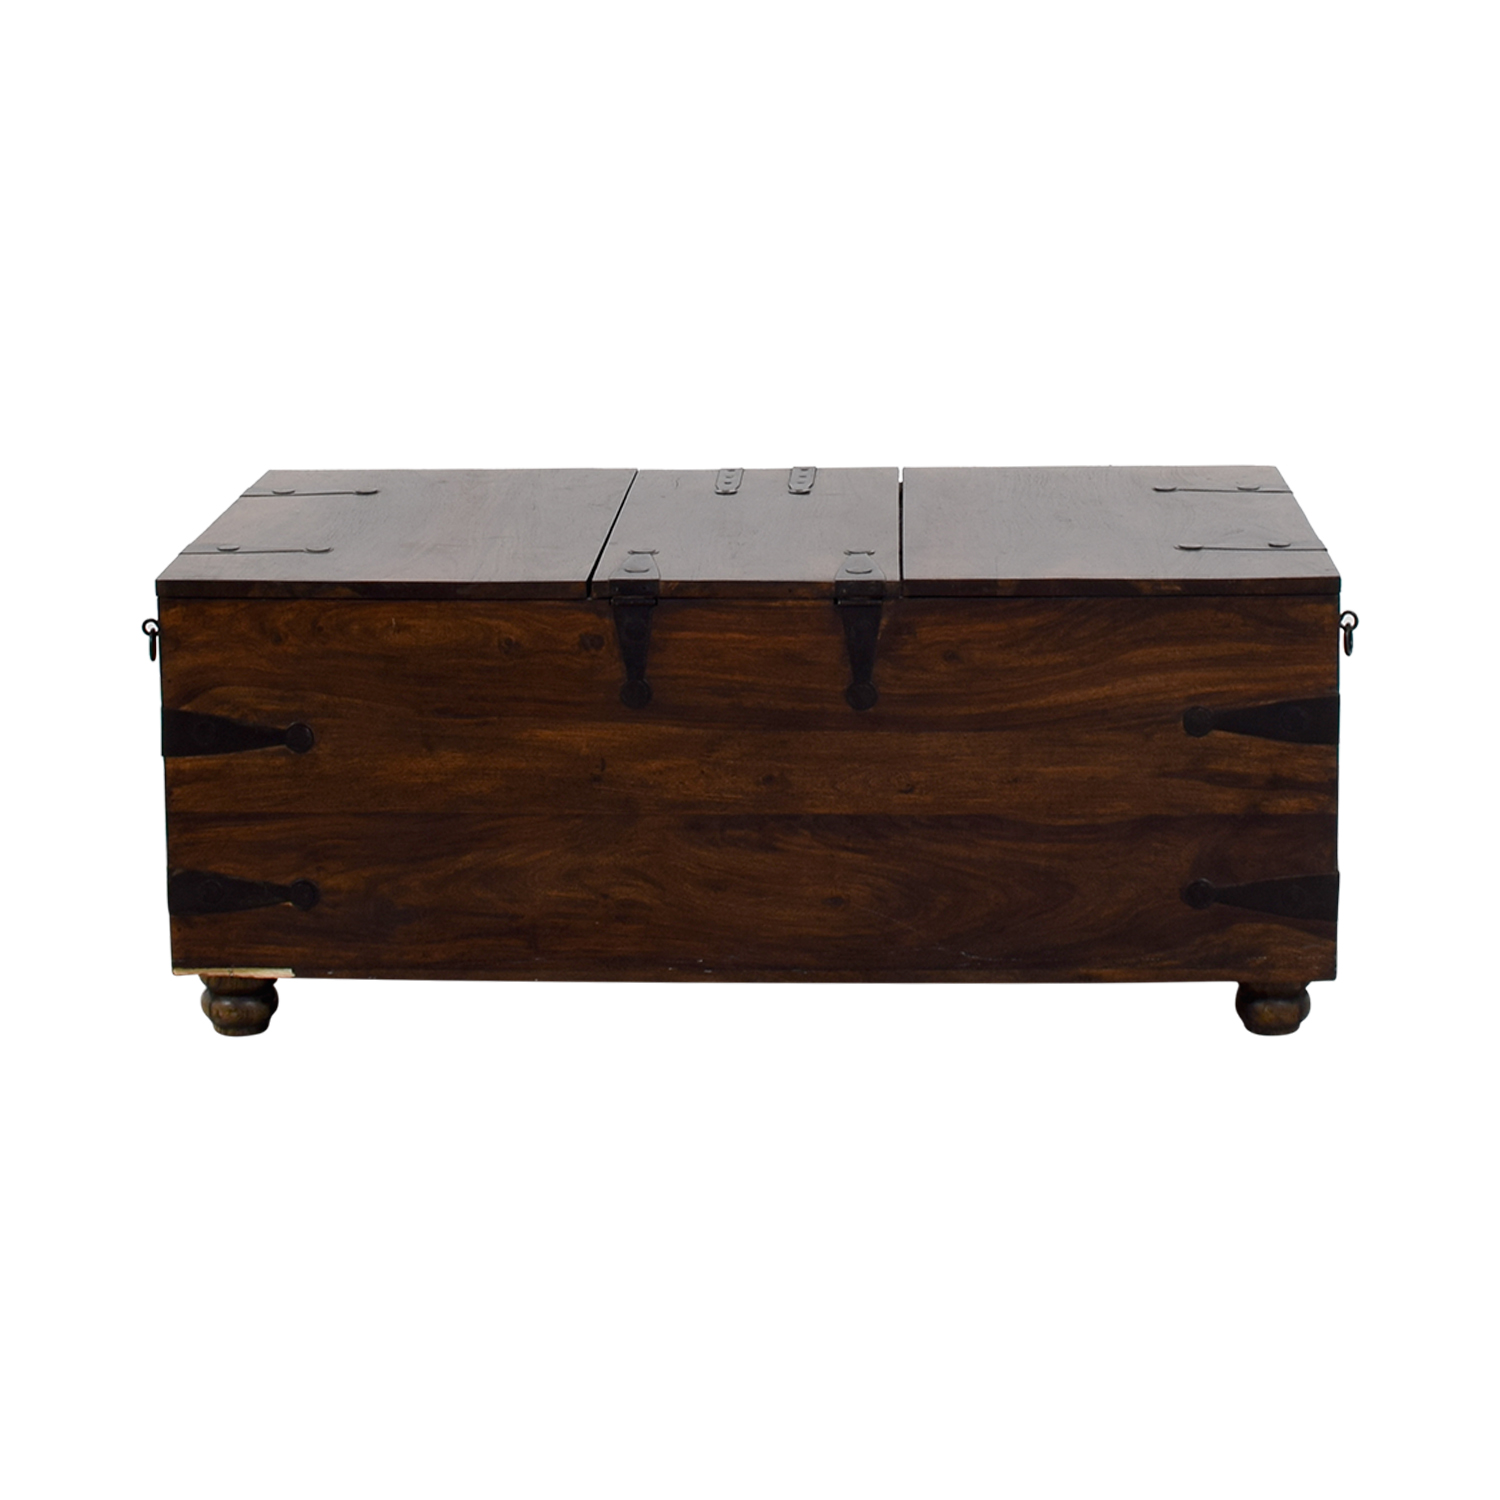 shop crate barrel crate barrel trunk coffee table - Crate And Barrel End Tables